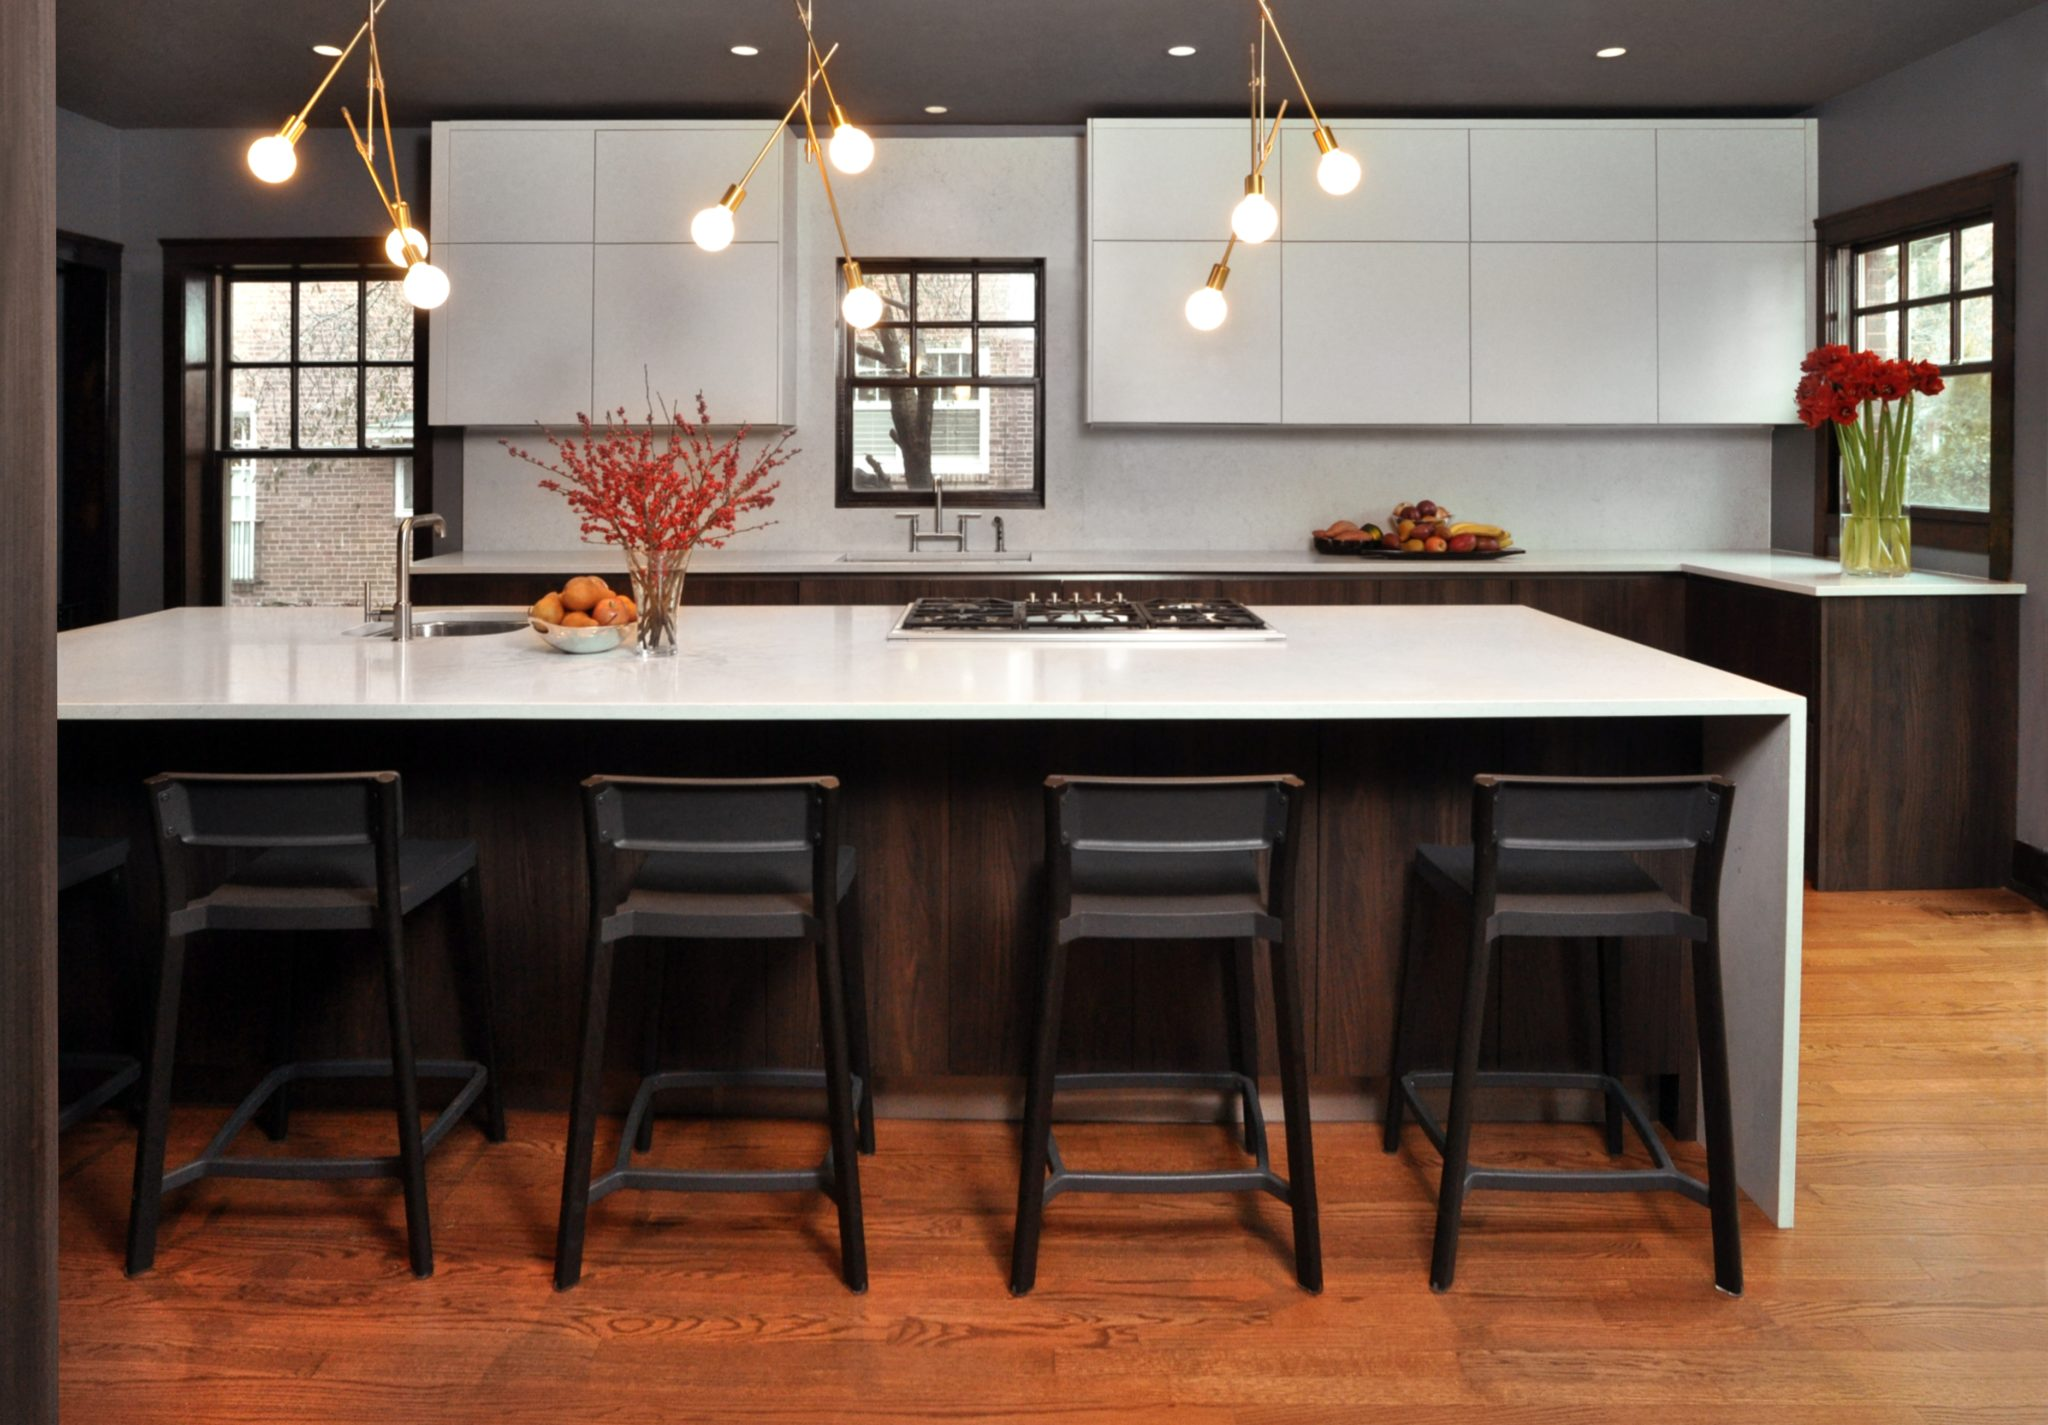 Oak Park kitchen - mid-century modern-inspired chef's kitchen with counter seating by Nicholas Moriarty Interiors